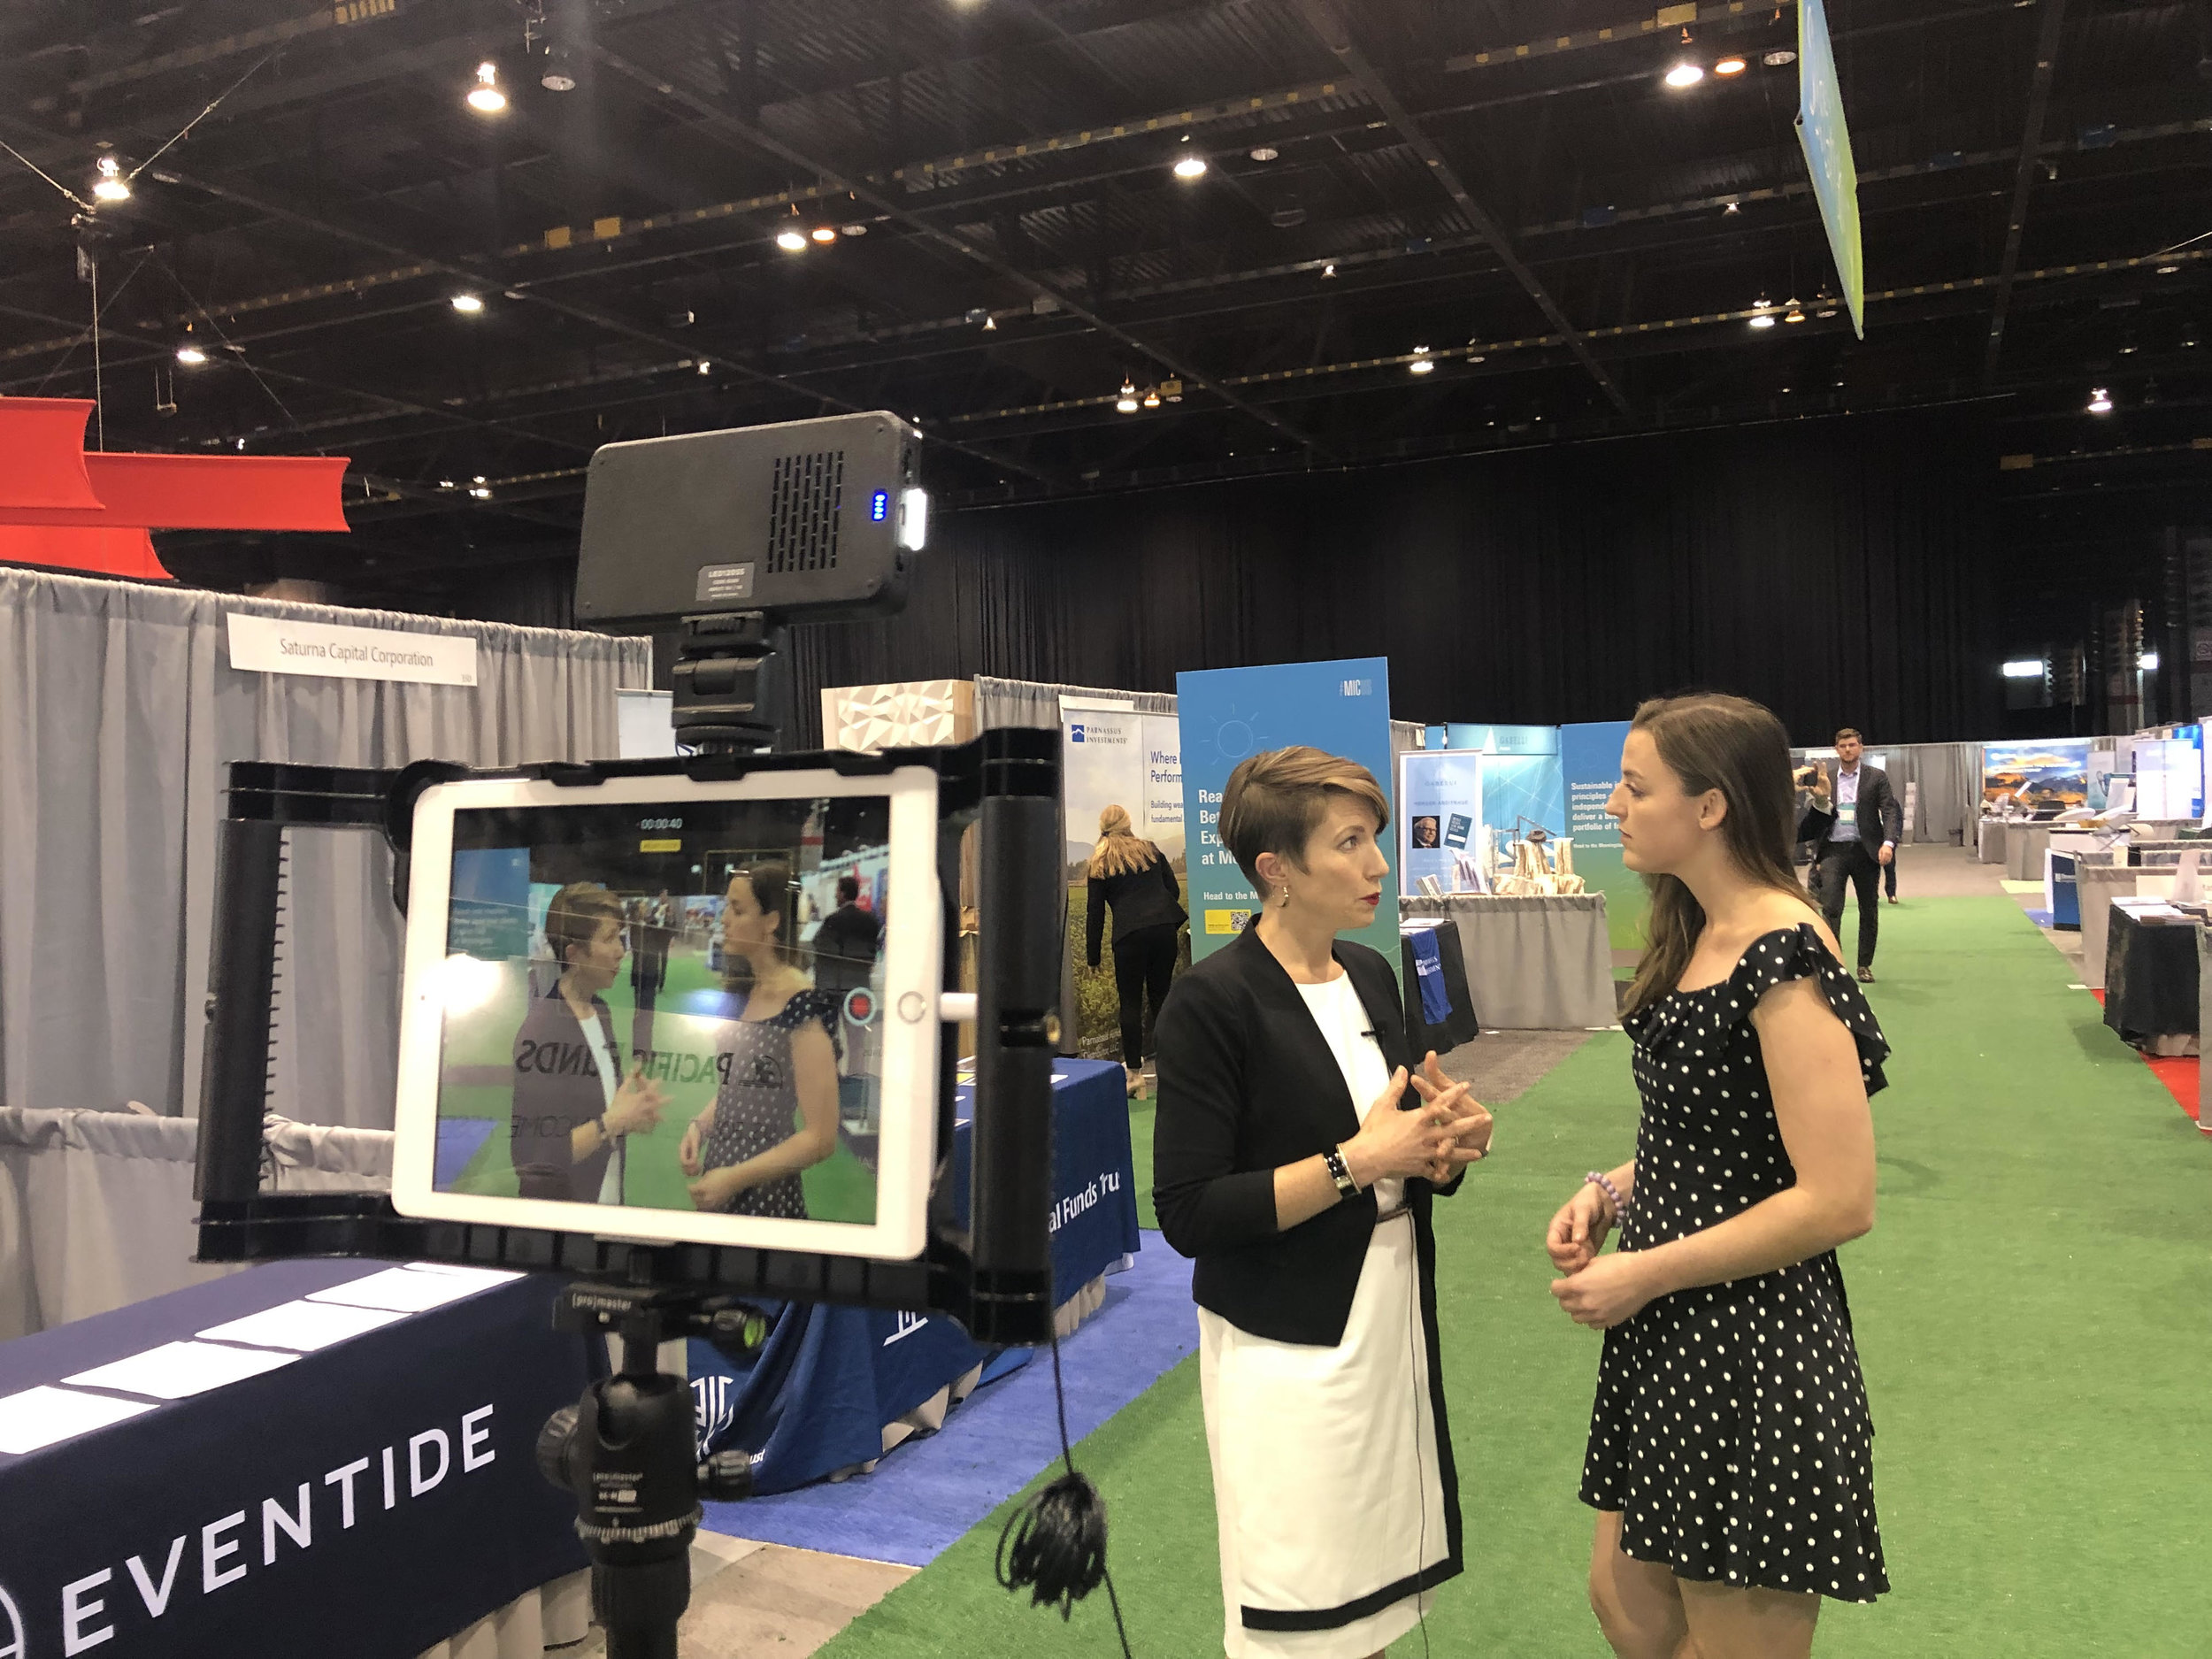 In Sustainability Row, chatting with Amelia Garland of CityWire.